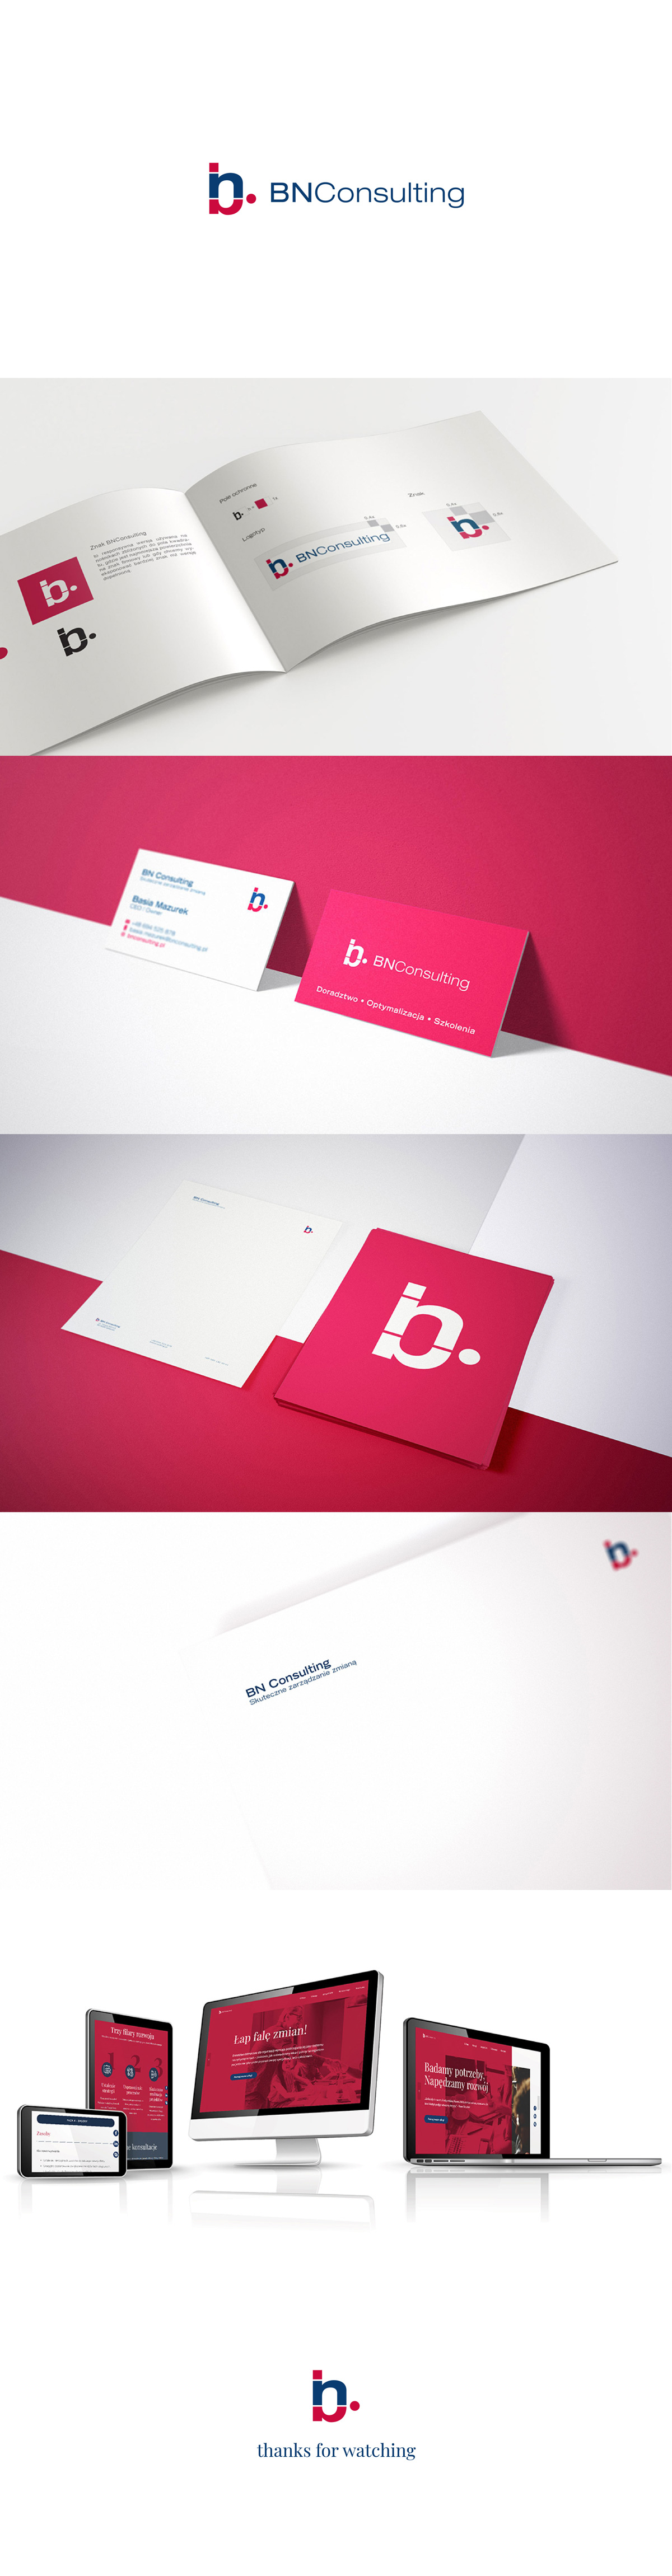 Graphic designs created for BNConsulting by You'll Marketing Agency